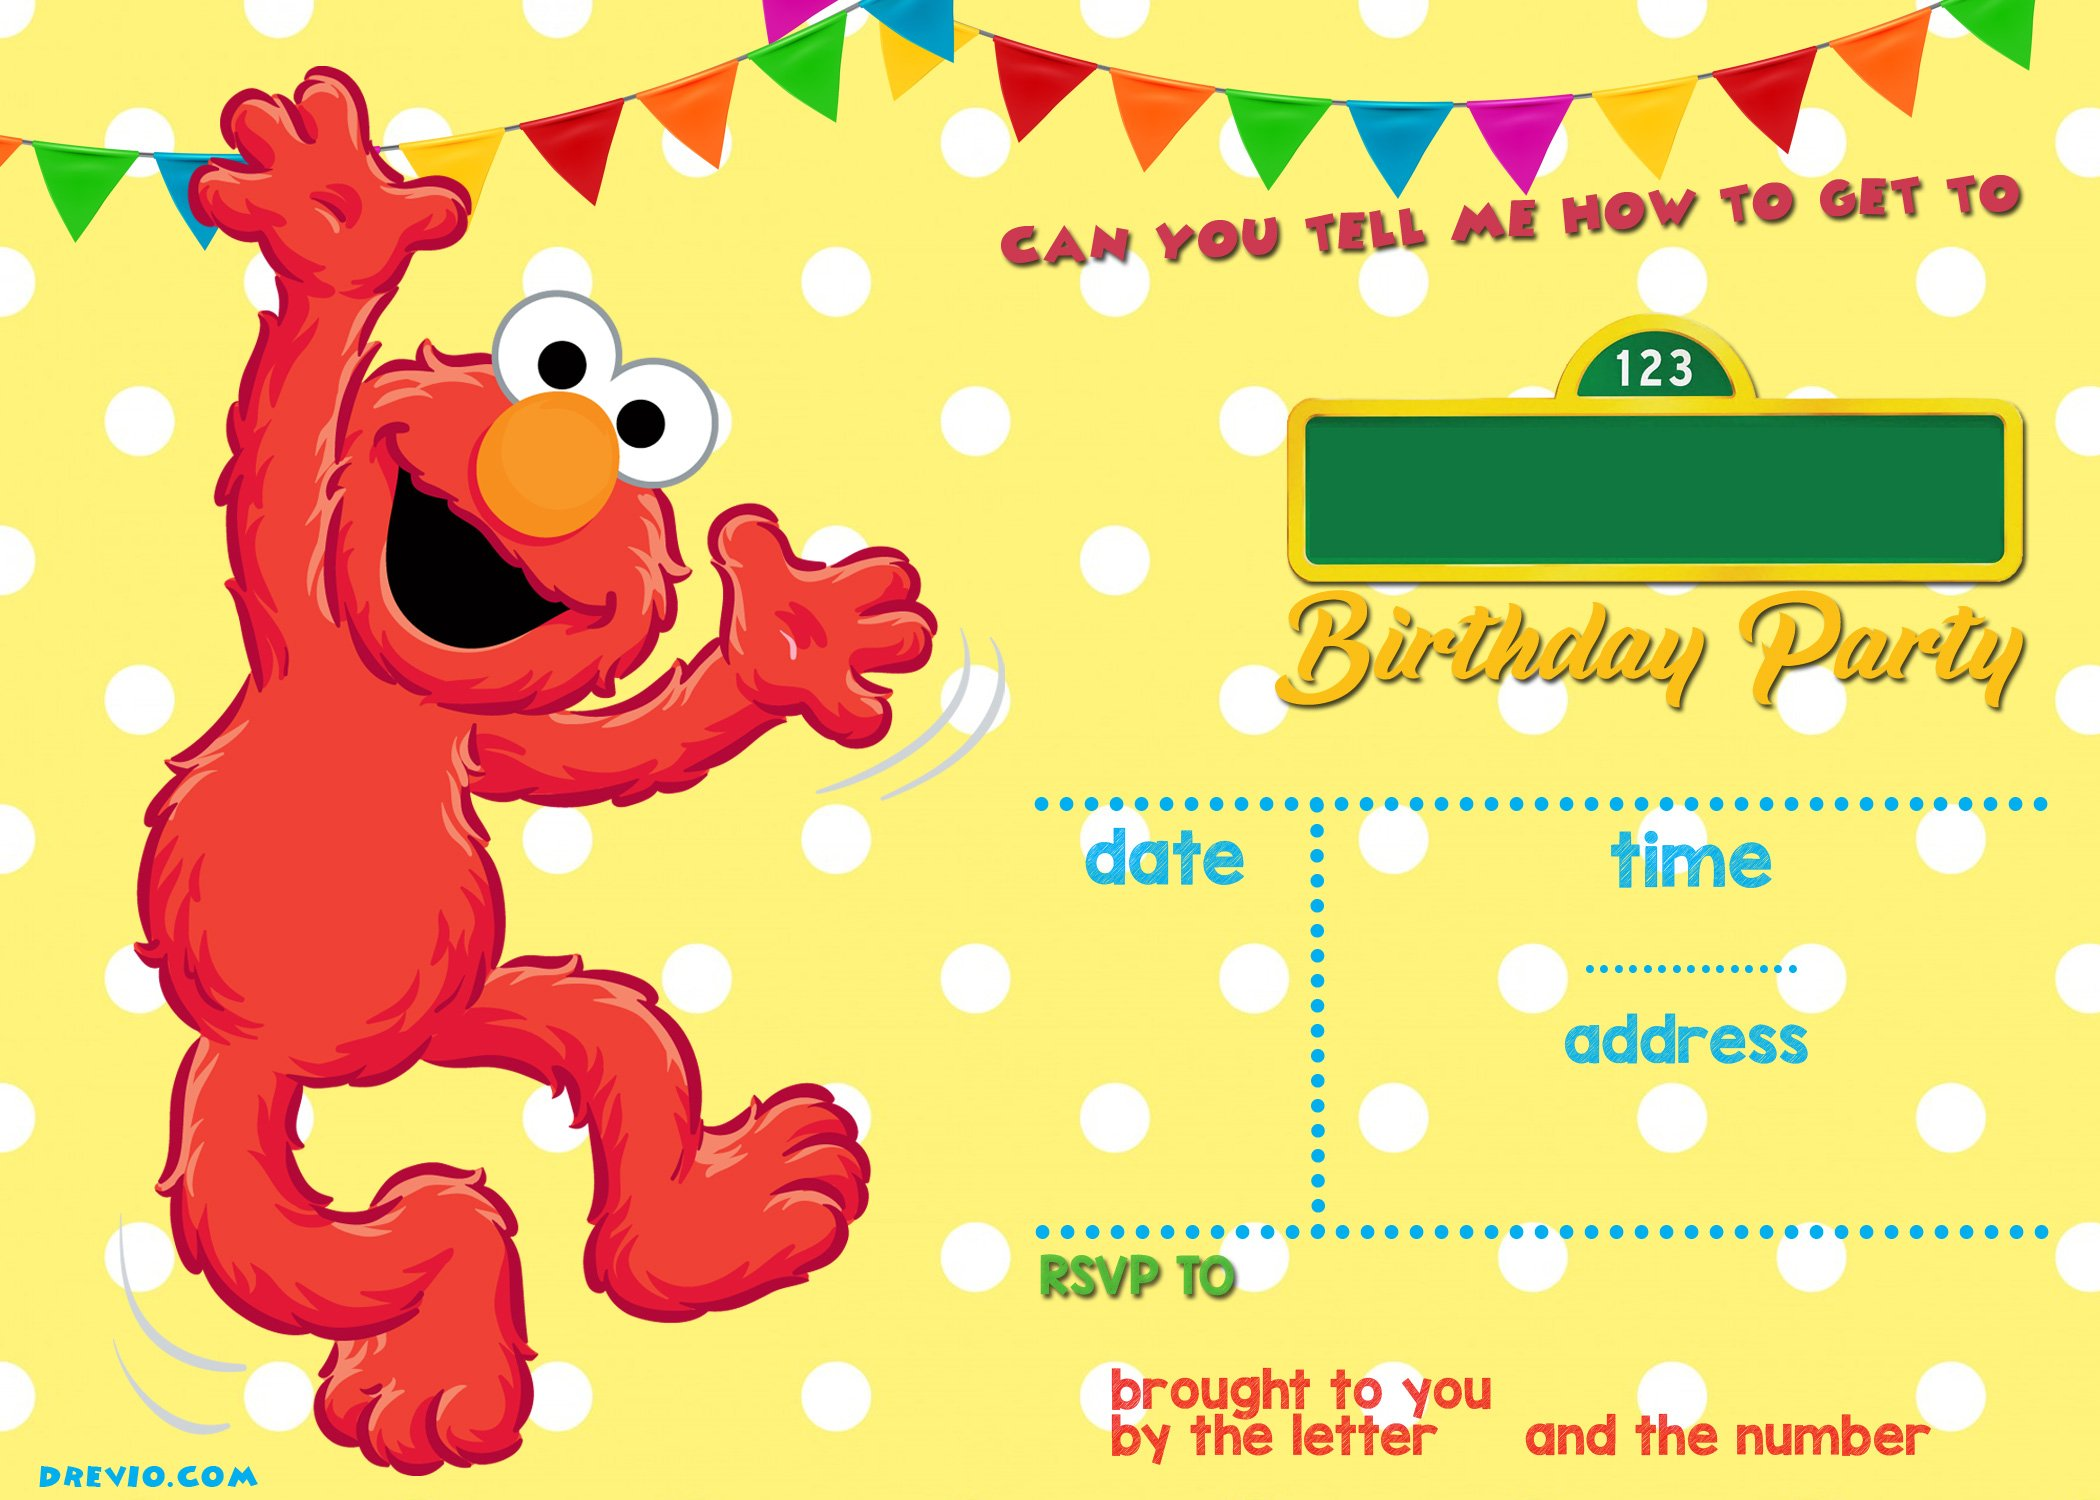 picture about Elmo Printable referred to as Elmo Sesame Highway Birthday Celebration Invites - Cost-free